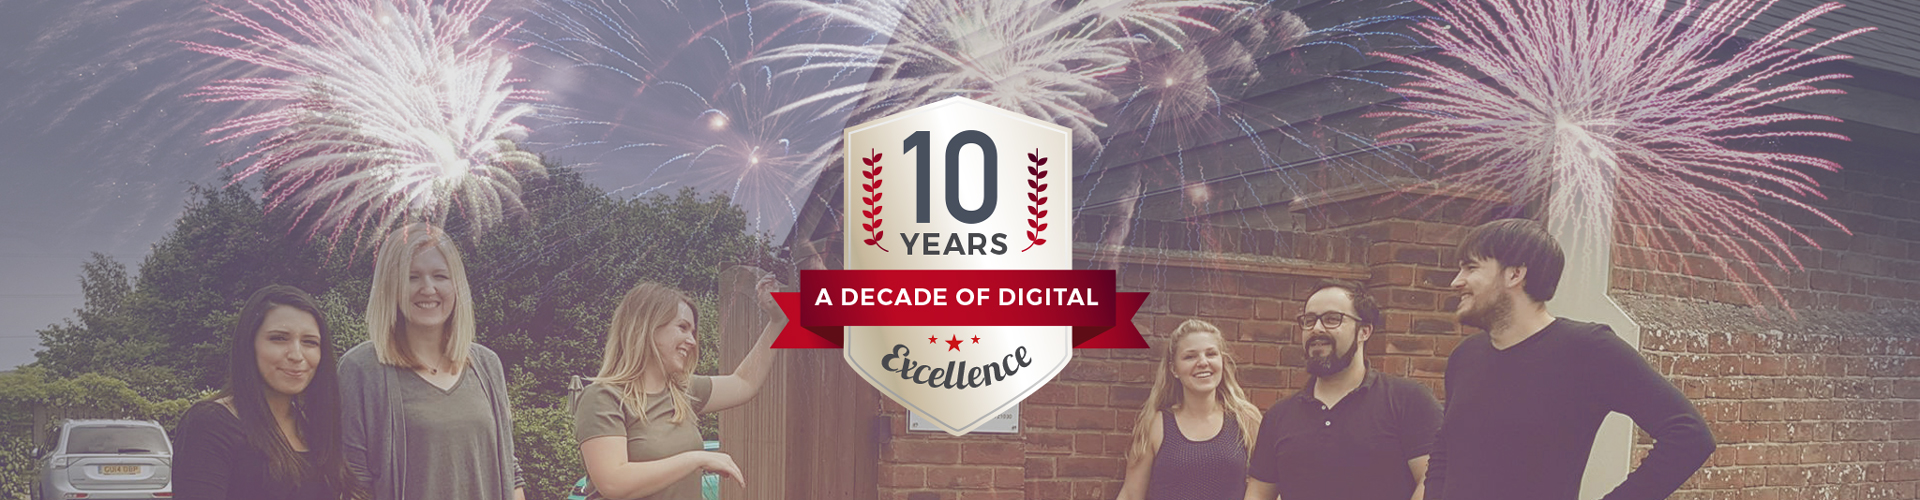 PageSuite Celebrate 10 Years in Business